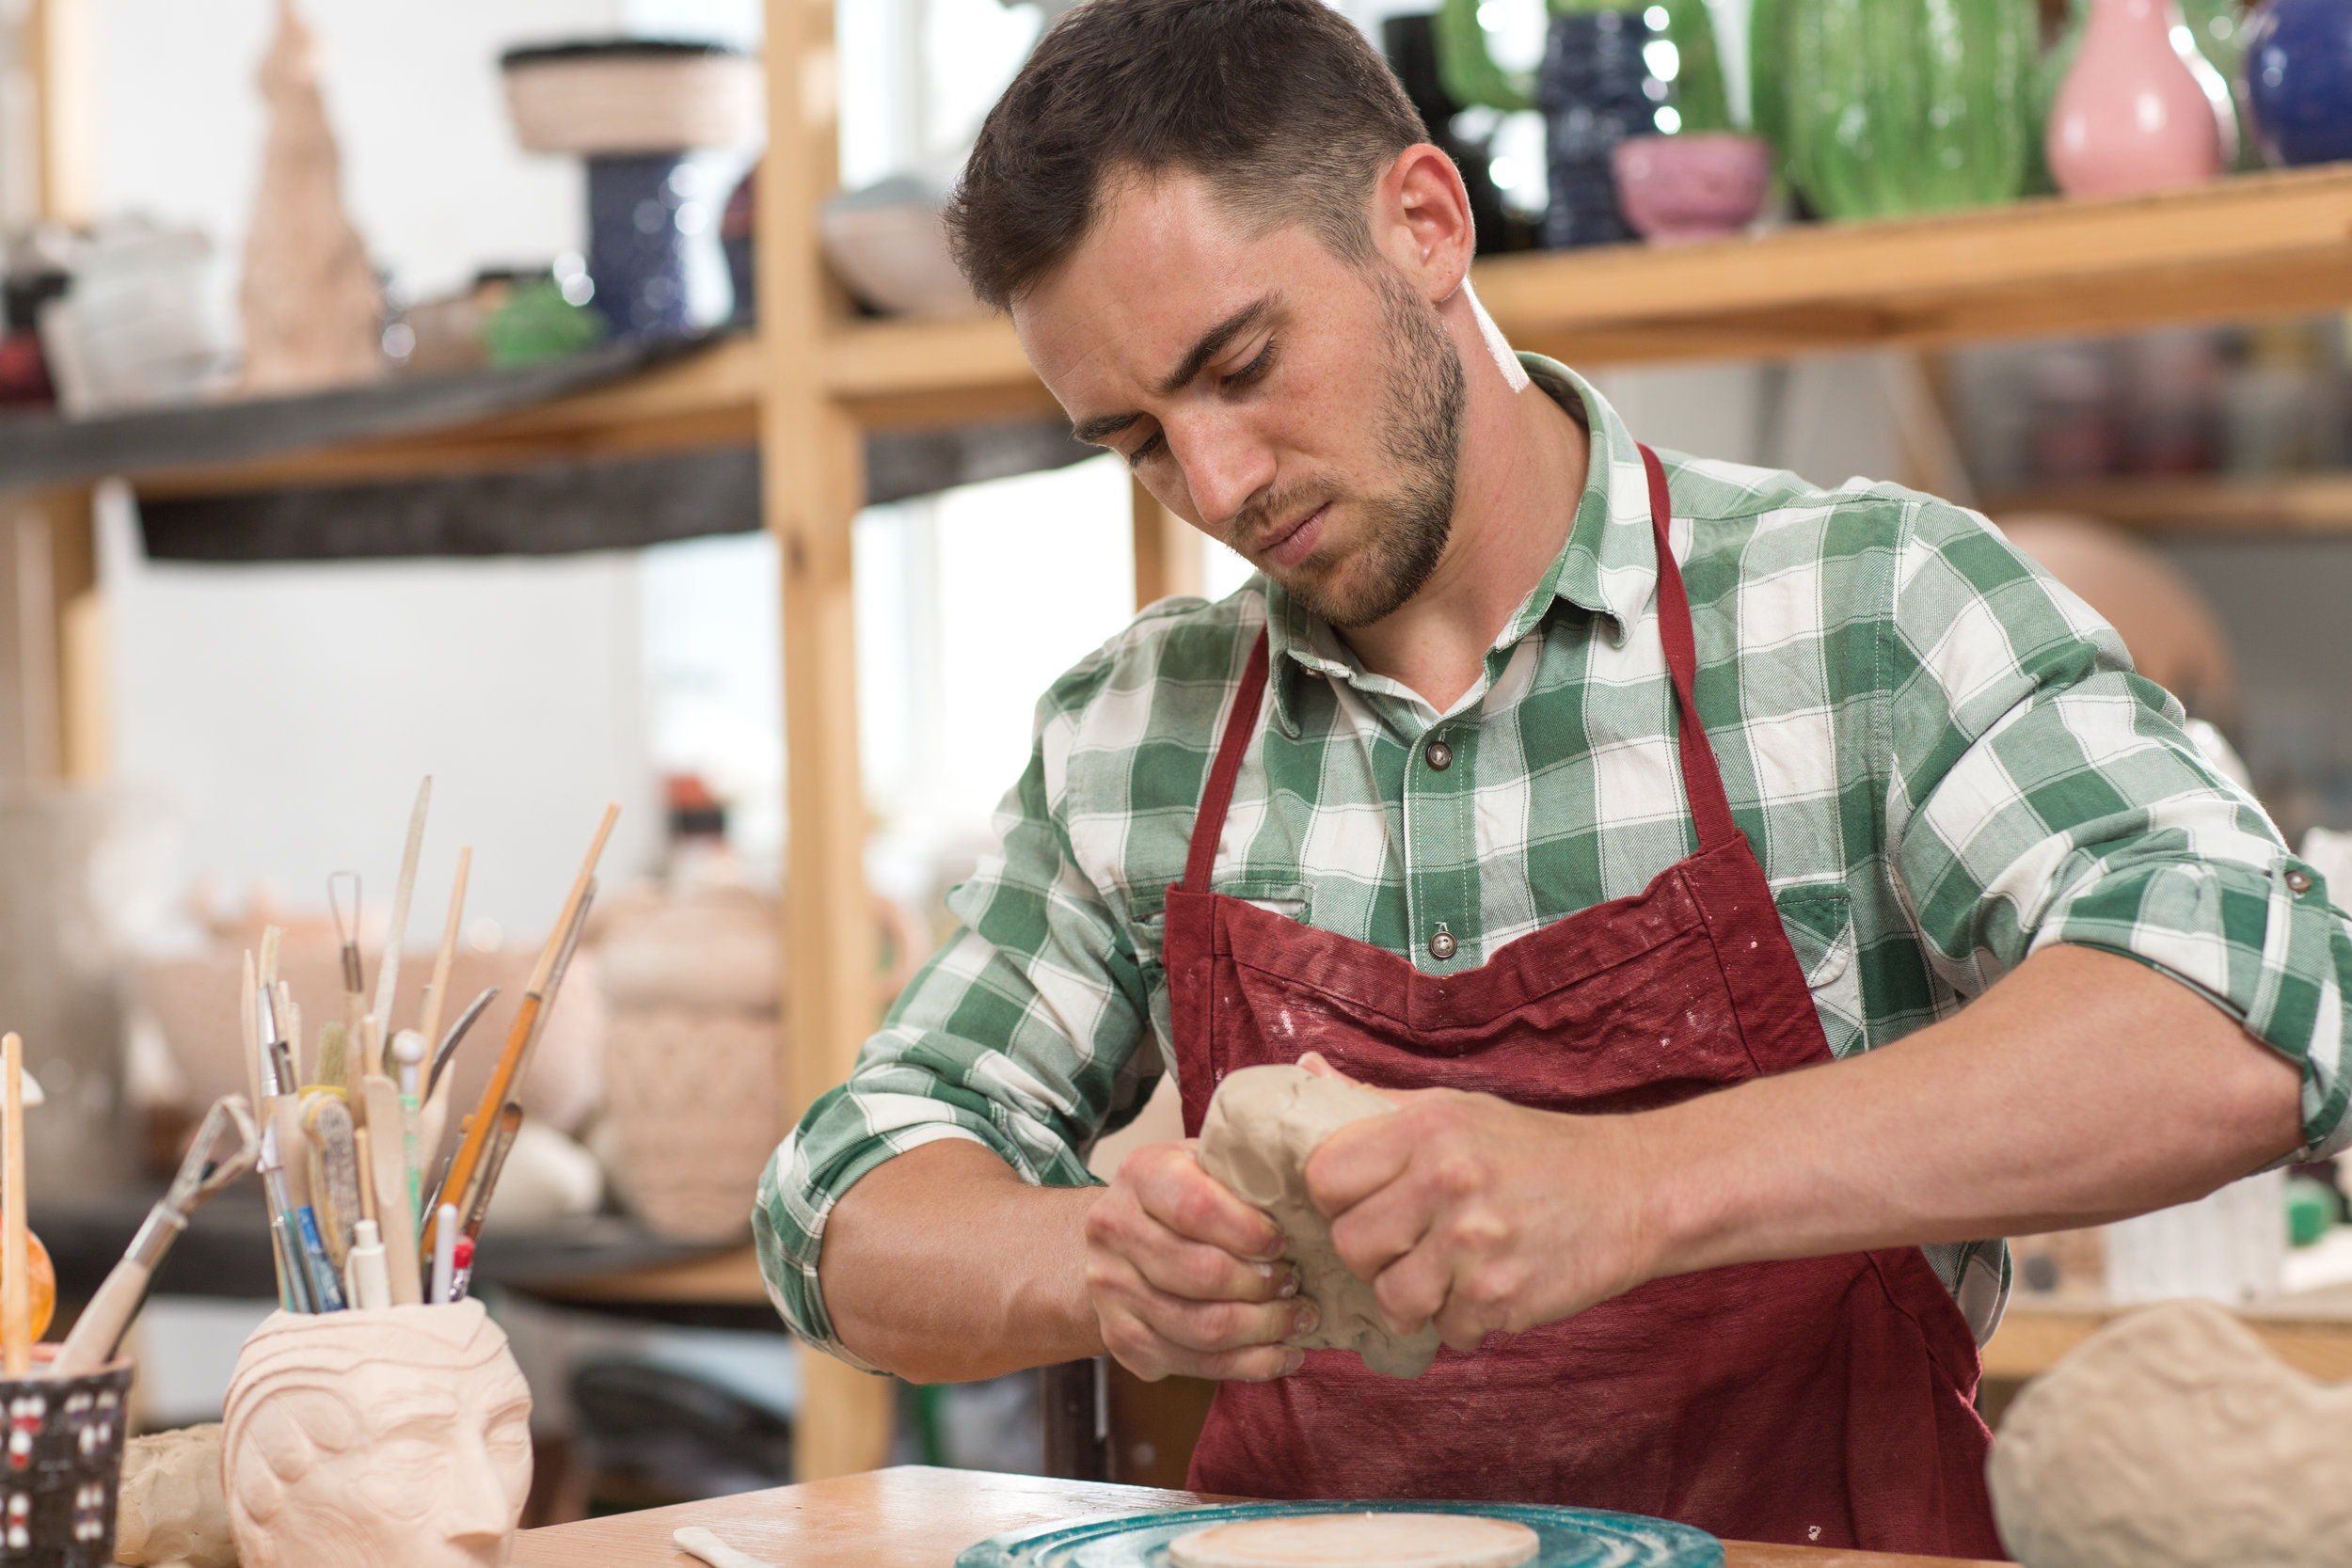 3. Focus - During the pottery process, outside influences don't affect the work which allows one to shift their focus towards their creation. Being able to fully focus on a project helps the mind relax and improves efficiency. Learning how to shift and place focus on a specific task assists in all aspects of life.